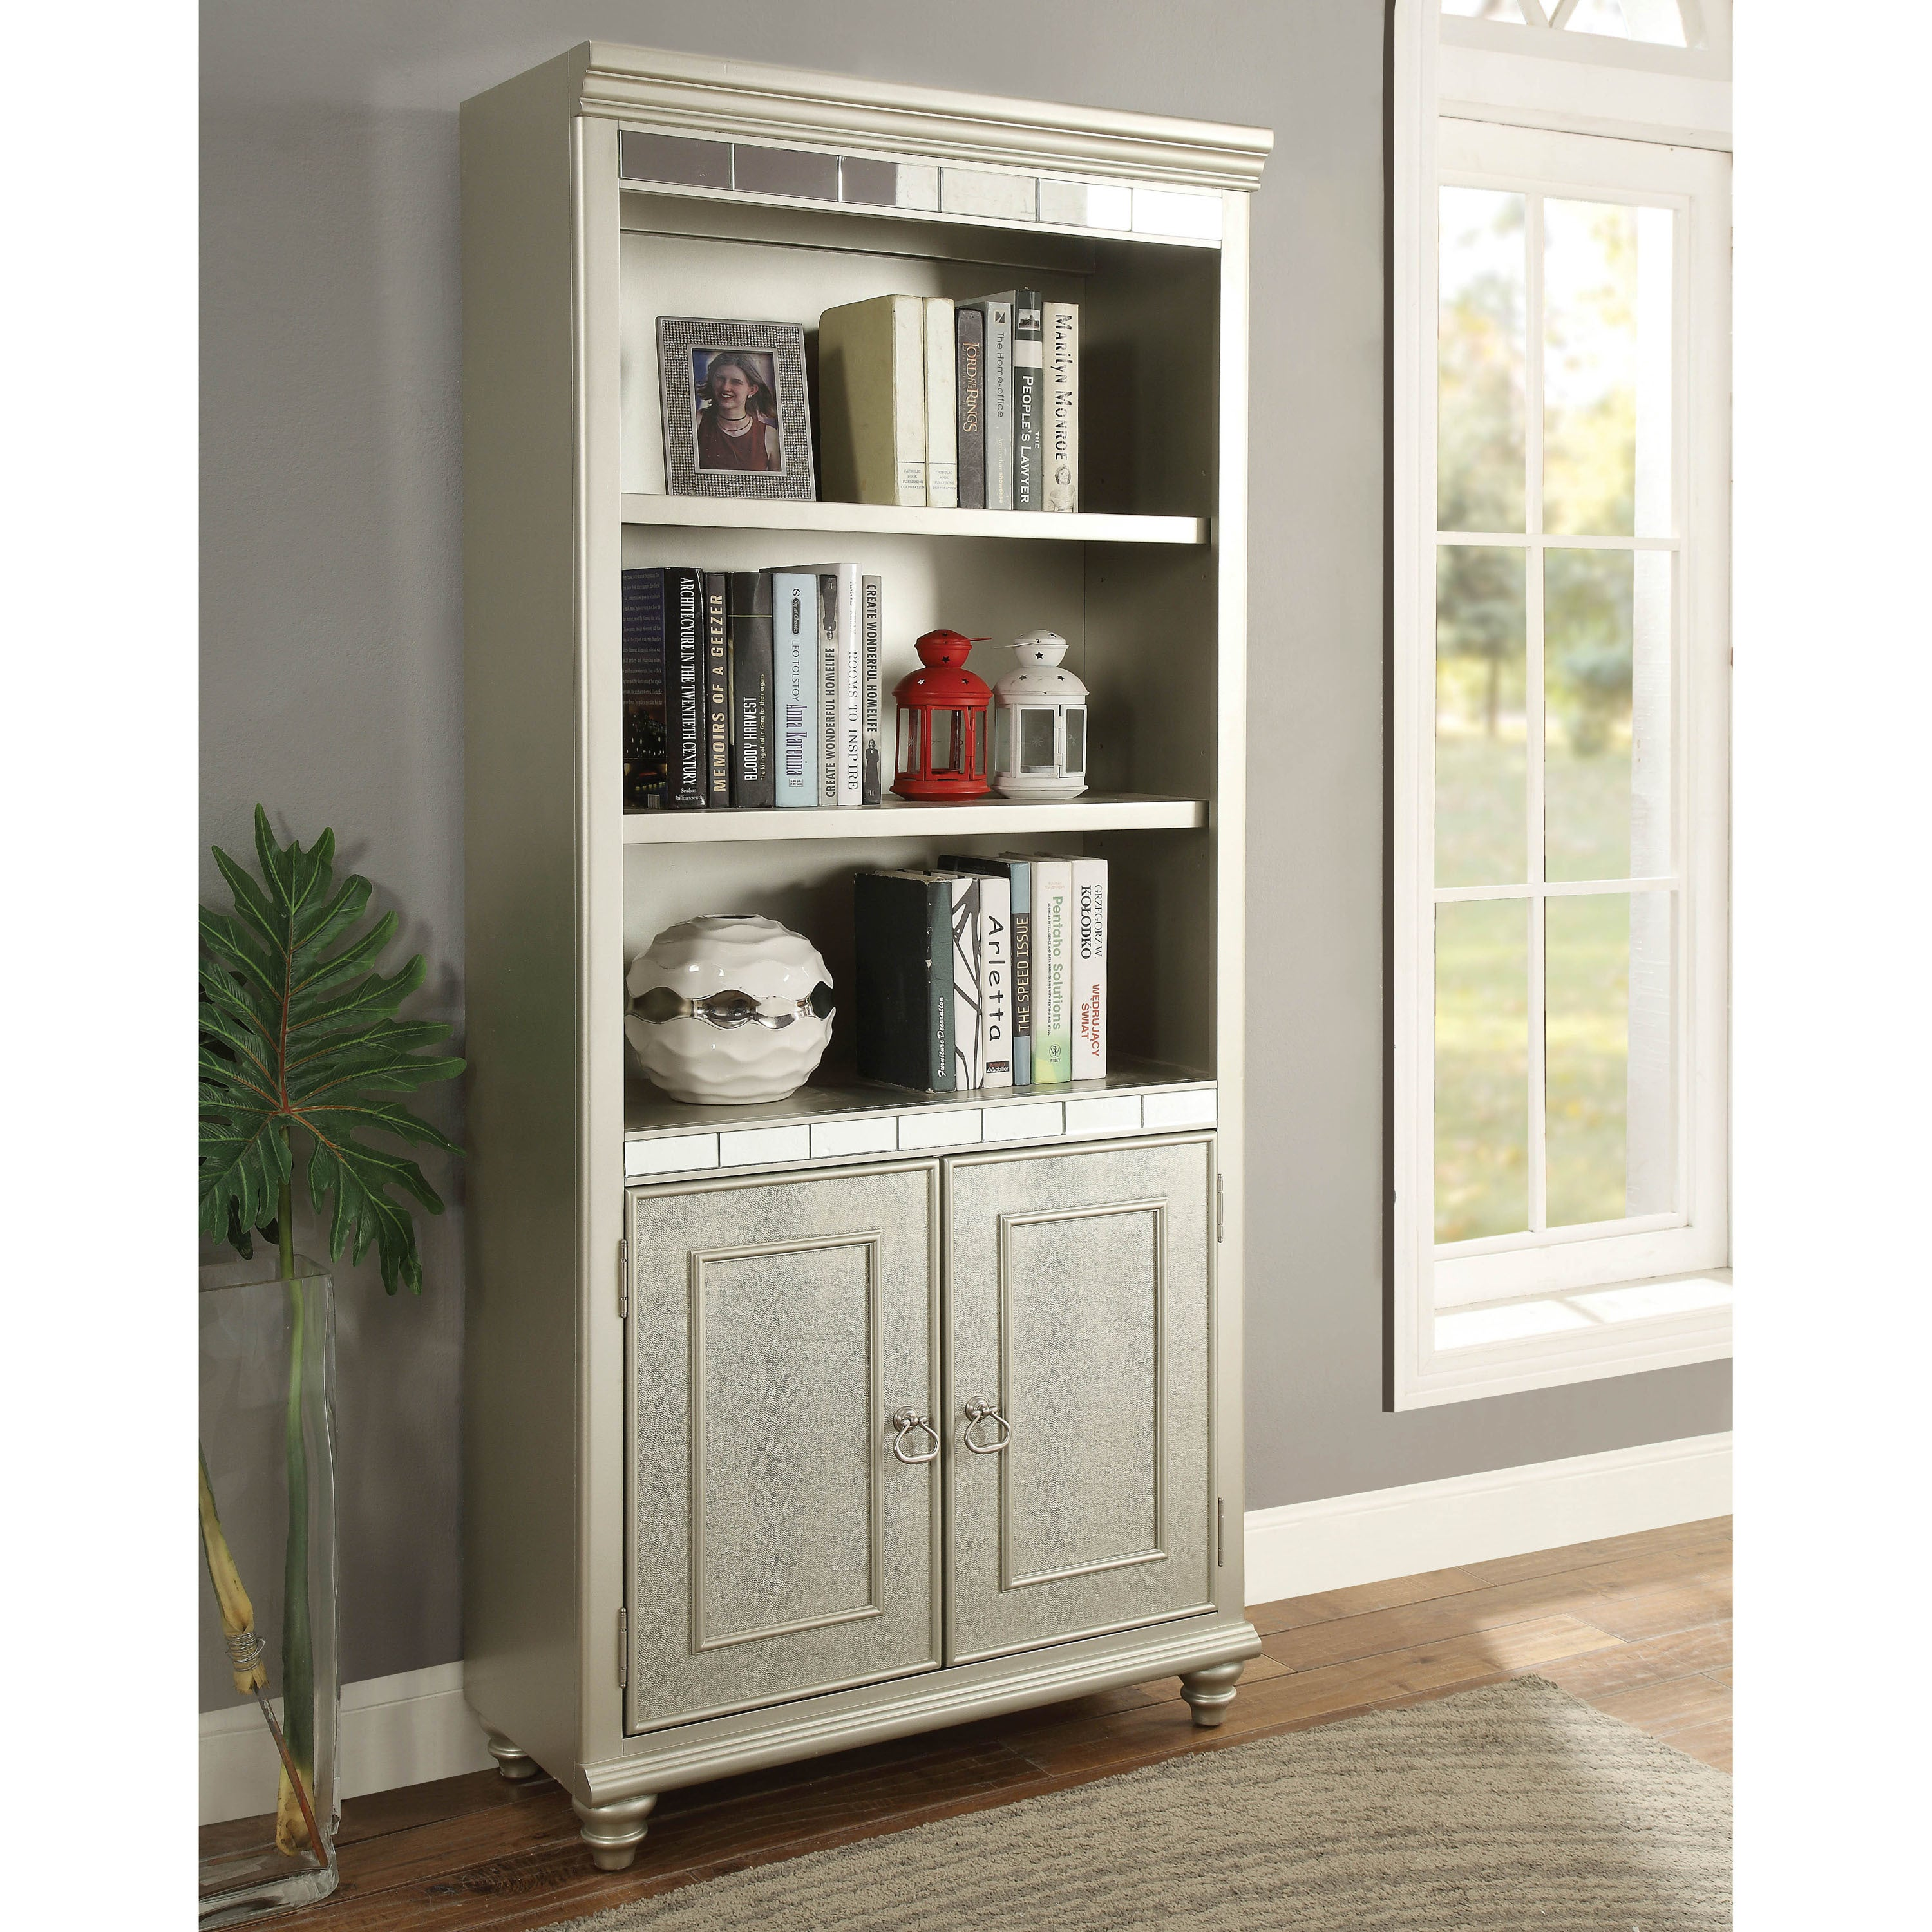 Furniture Of America Jacob Transitional Glam Silver Home Office Bookcase On Free Shipping Today 20301745